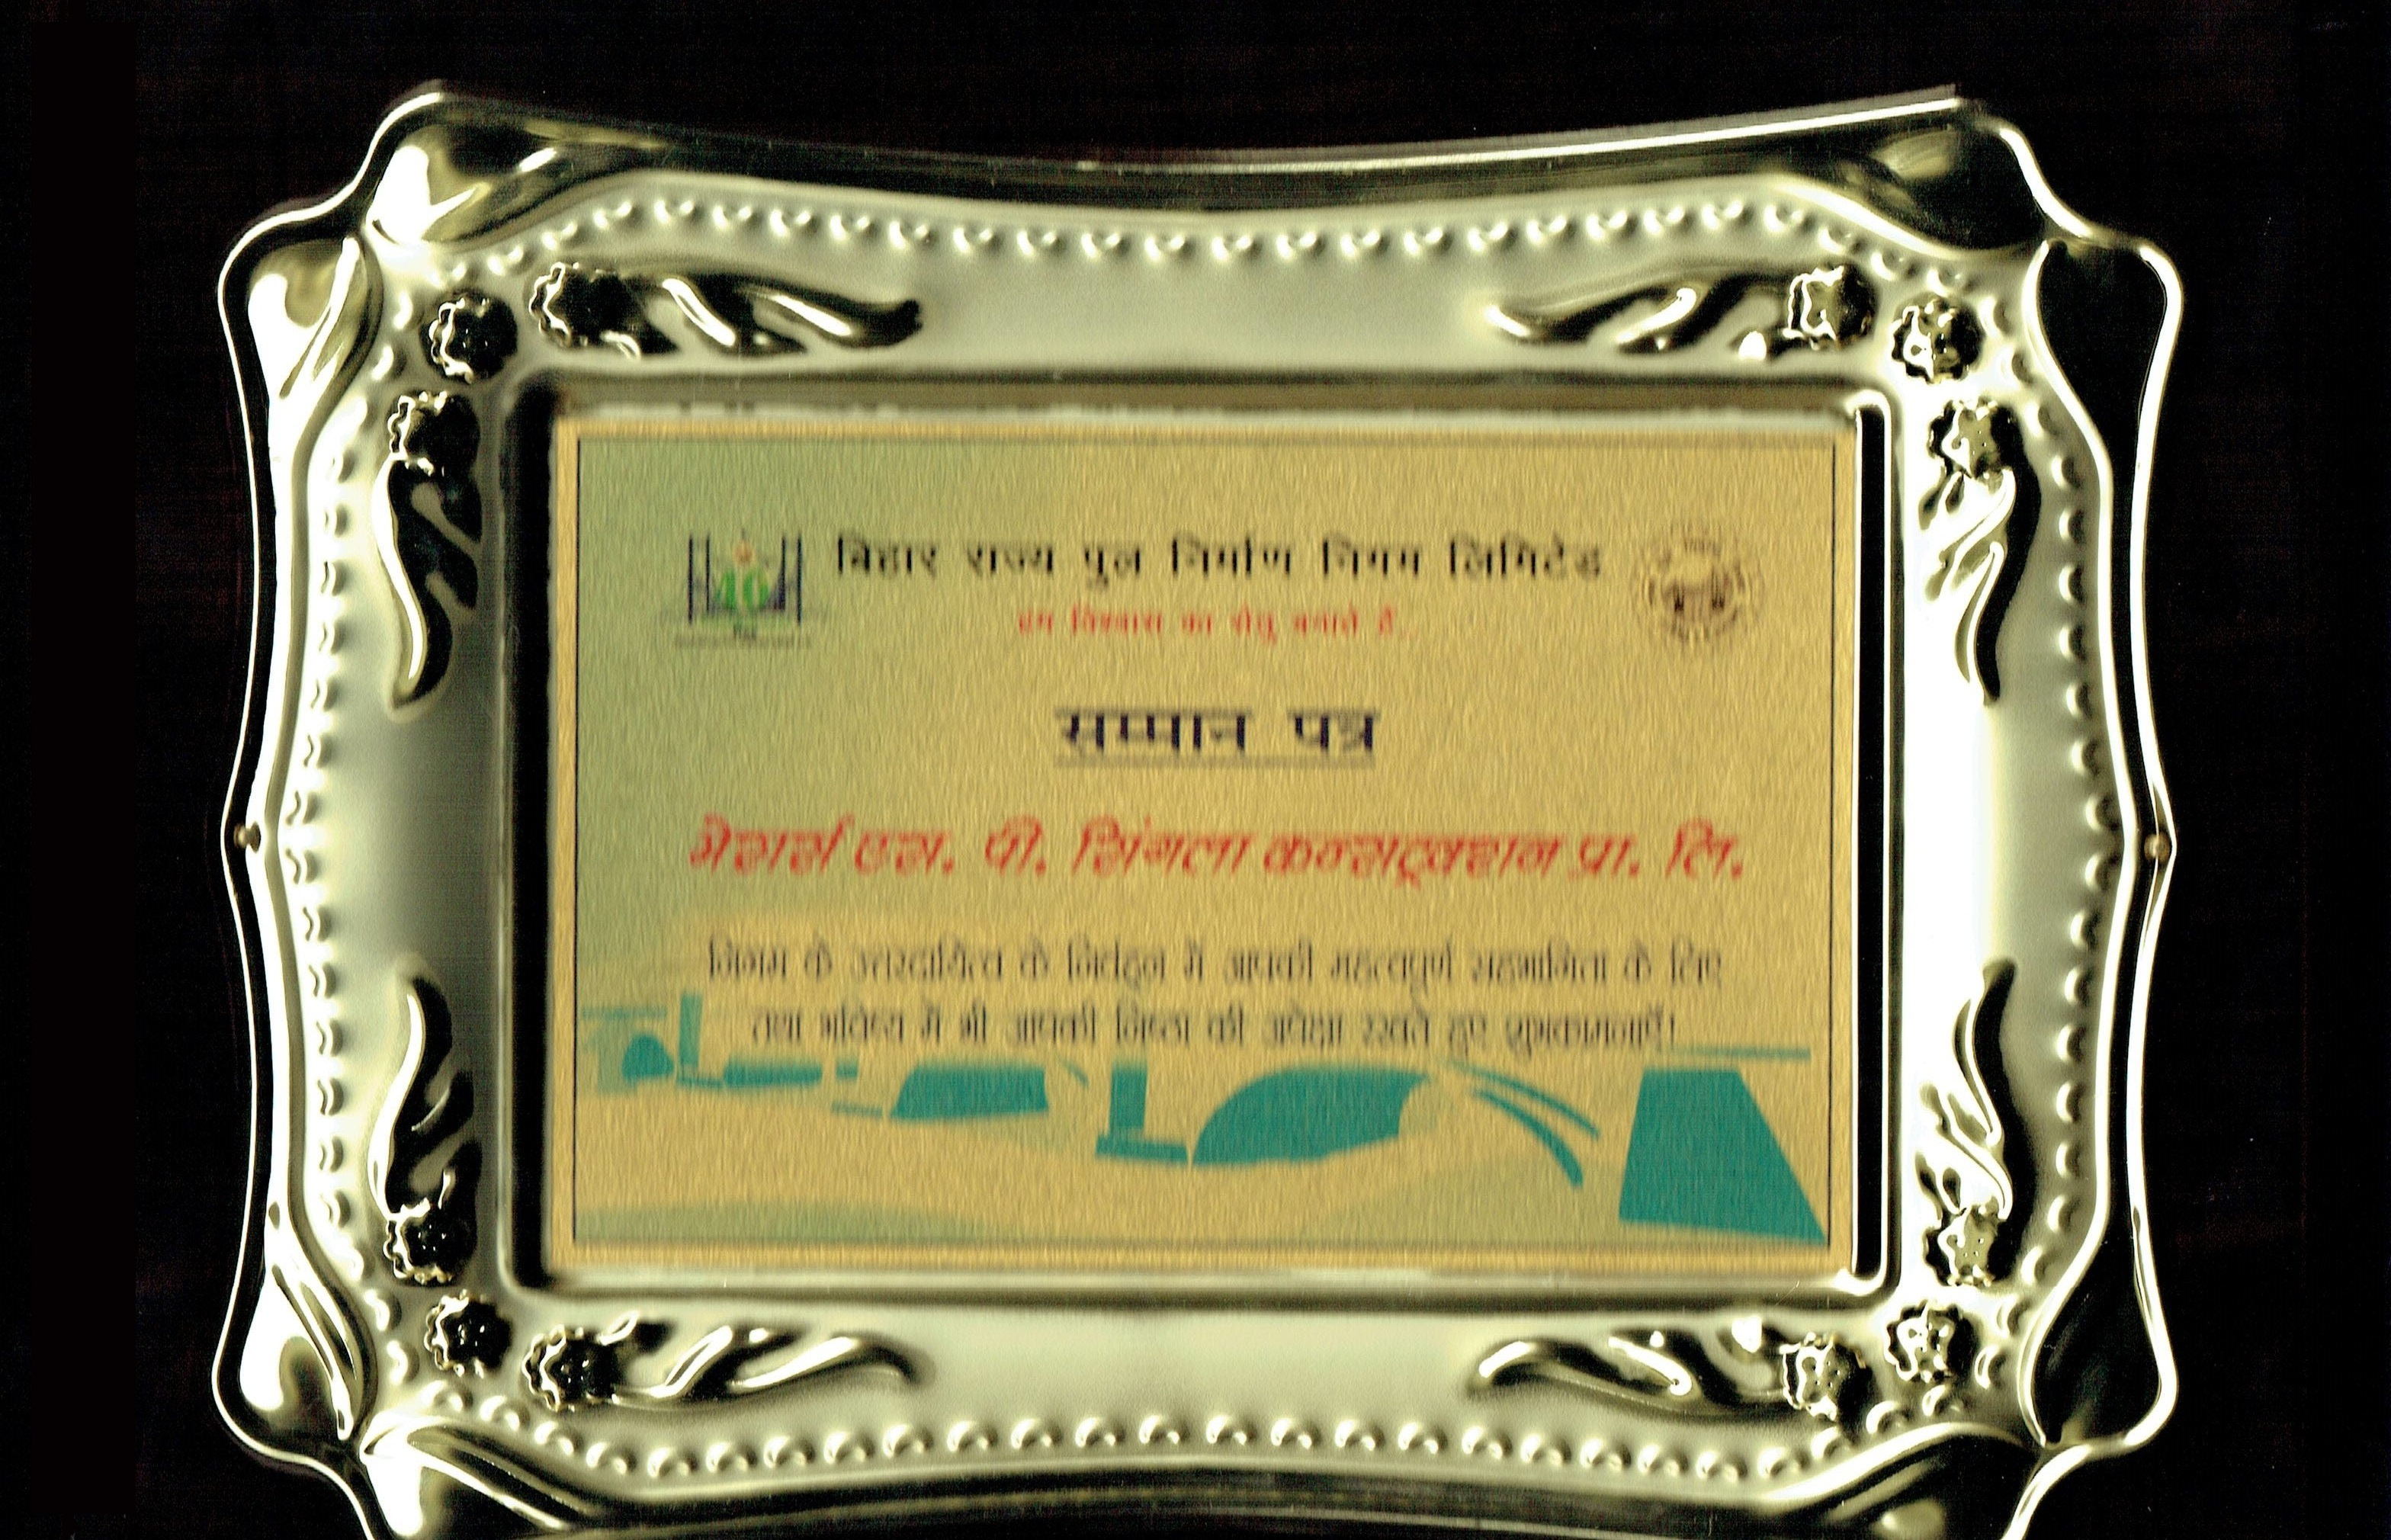 Citation by Bihar Rajya Pul Nirman Nigam Ltd, Bihar